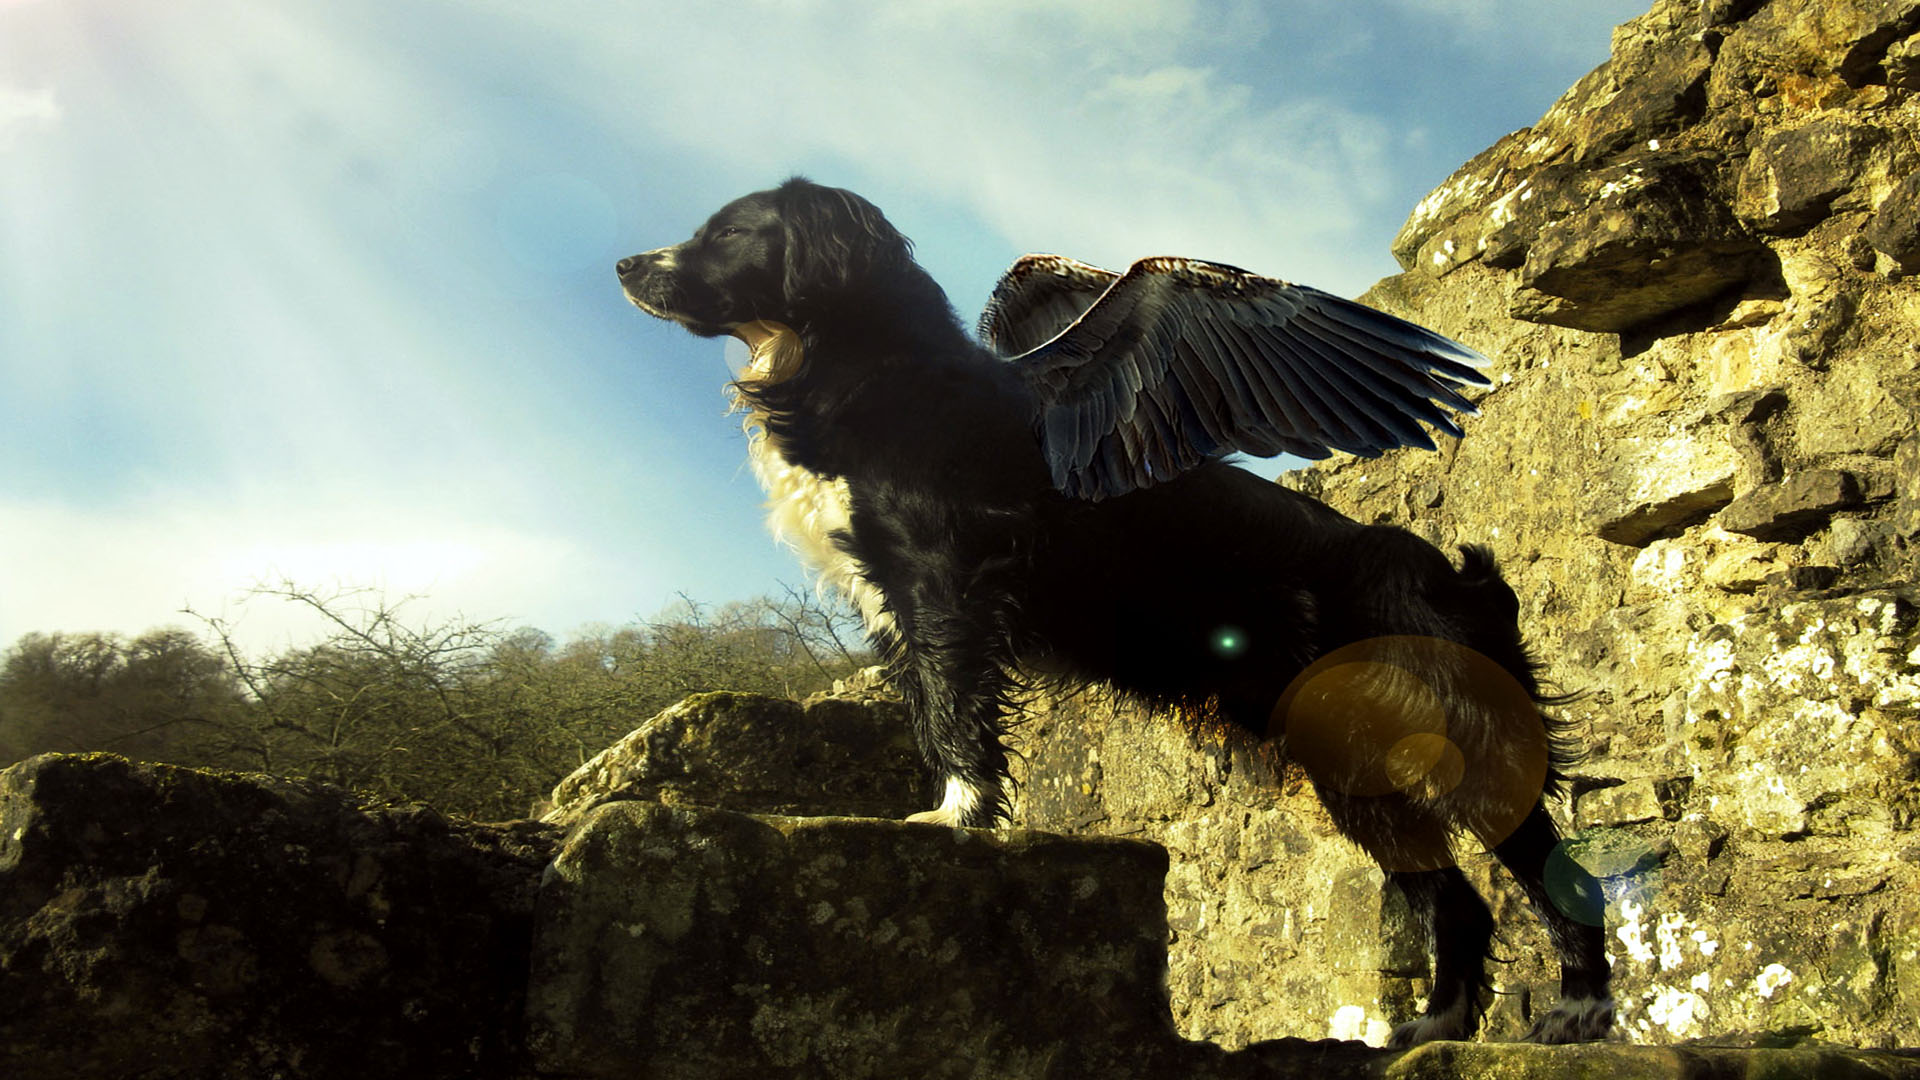 Flying Dog Cool Awesome 2 Wallpapers HD 1920x1080